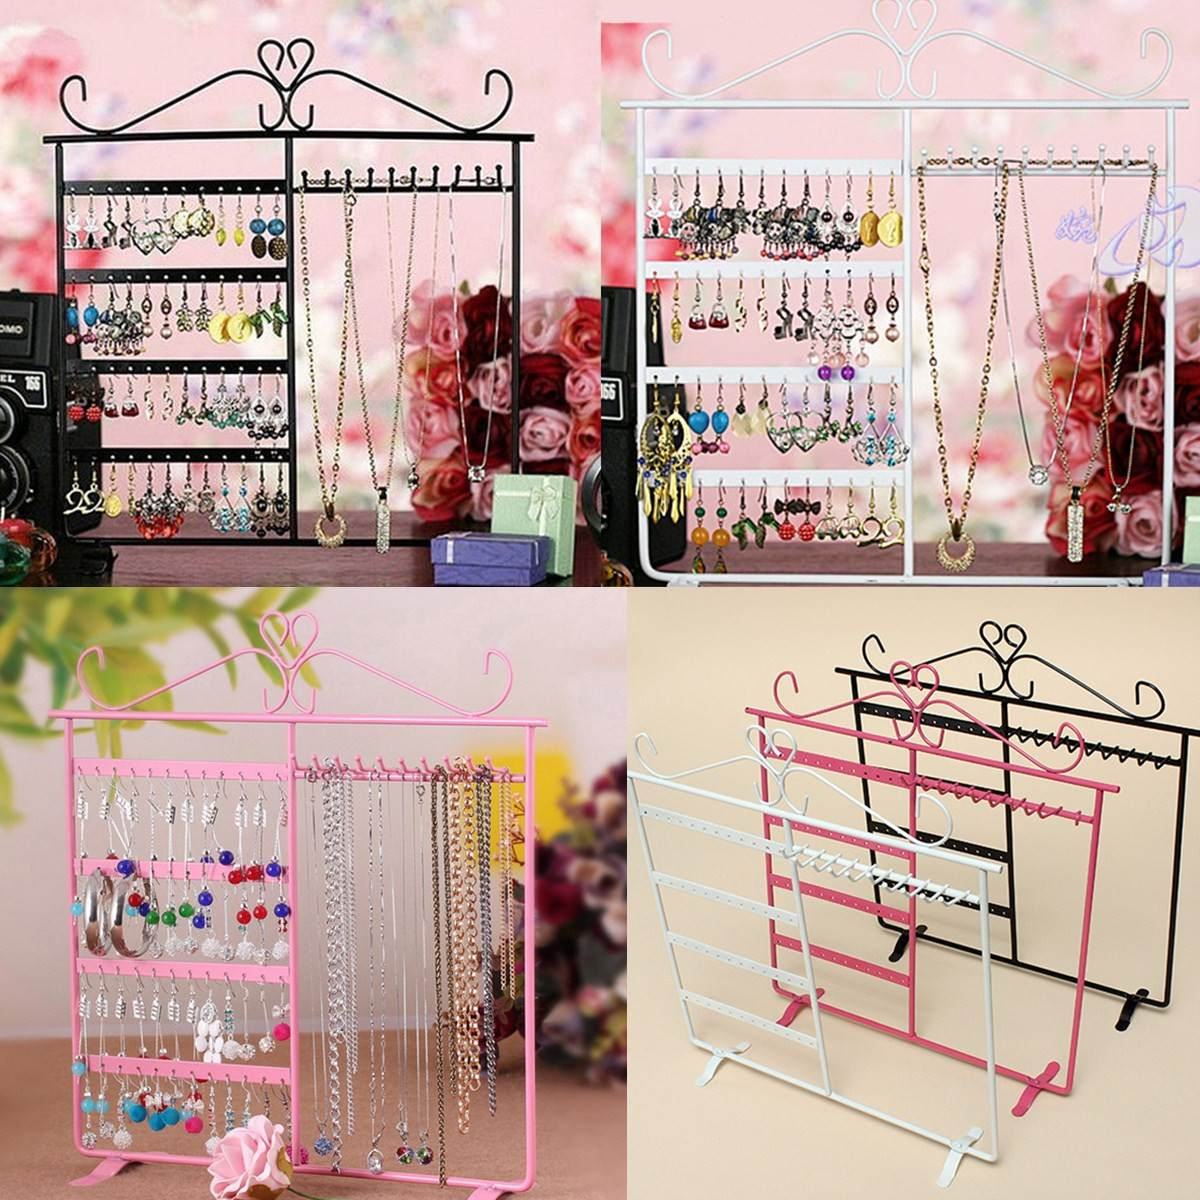 Earrings Ear Studs Necklace Jewelry Display Rack Metal Stand Organizer Metal Stand Holder Display Shelf Jewelry